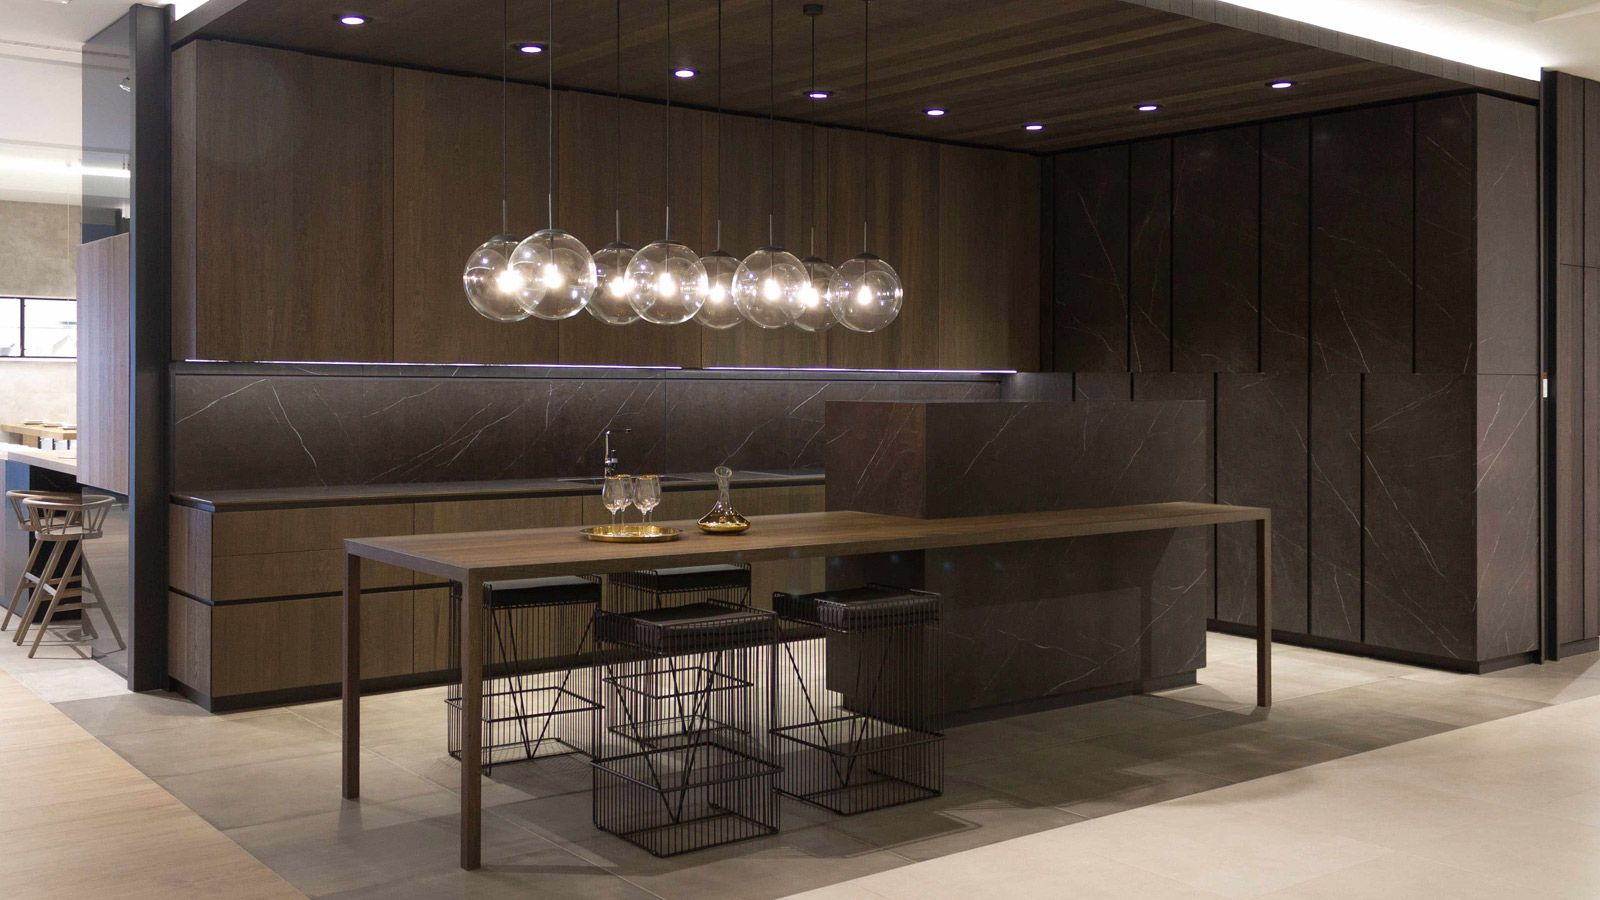 Comfort And Premium Design With The New Emotions Kitchen By Gamadecor Kitchen Kitchen Design Extractor Hood